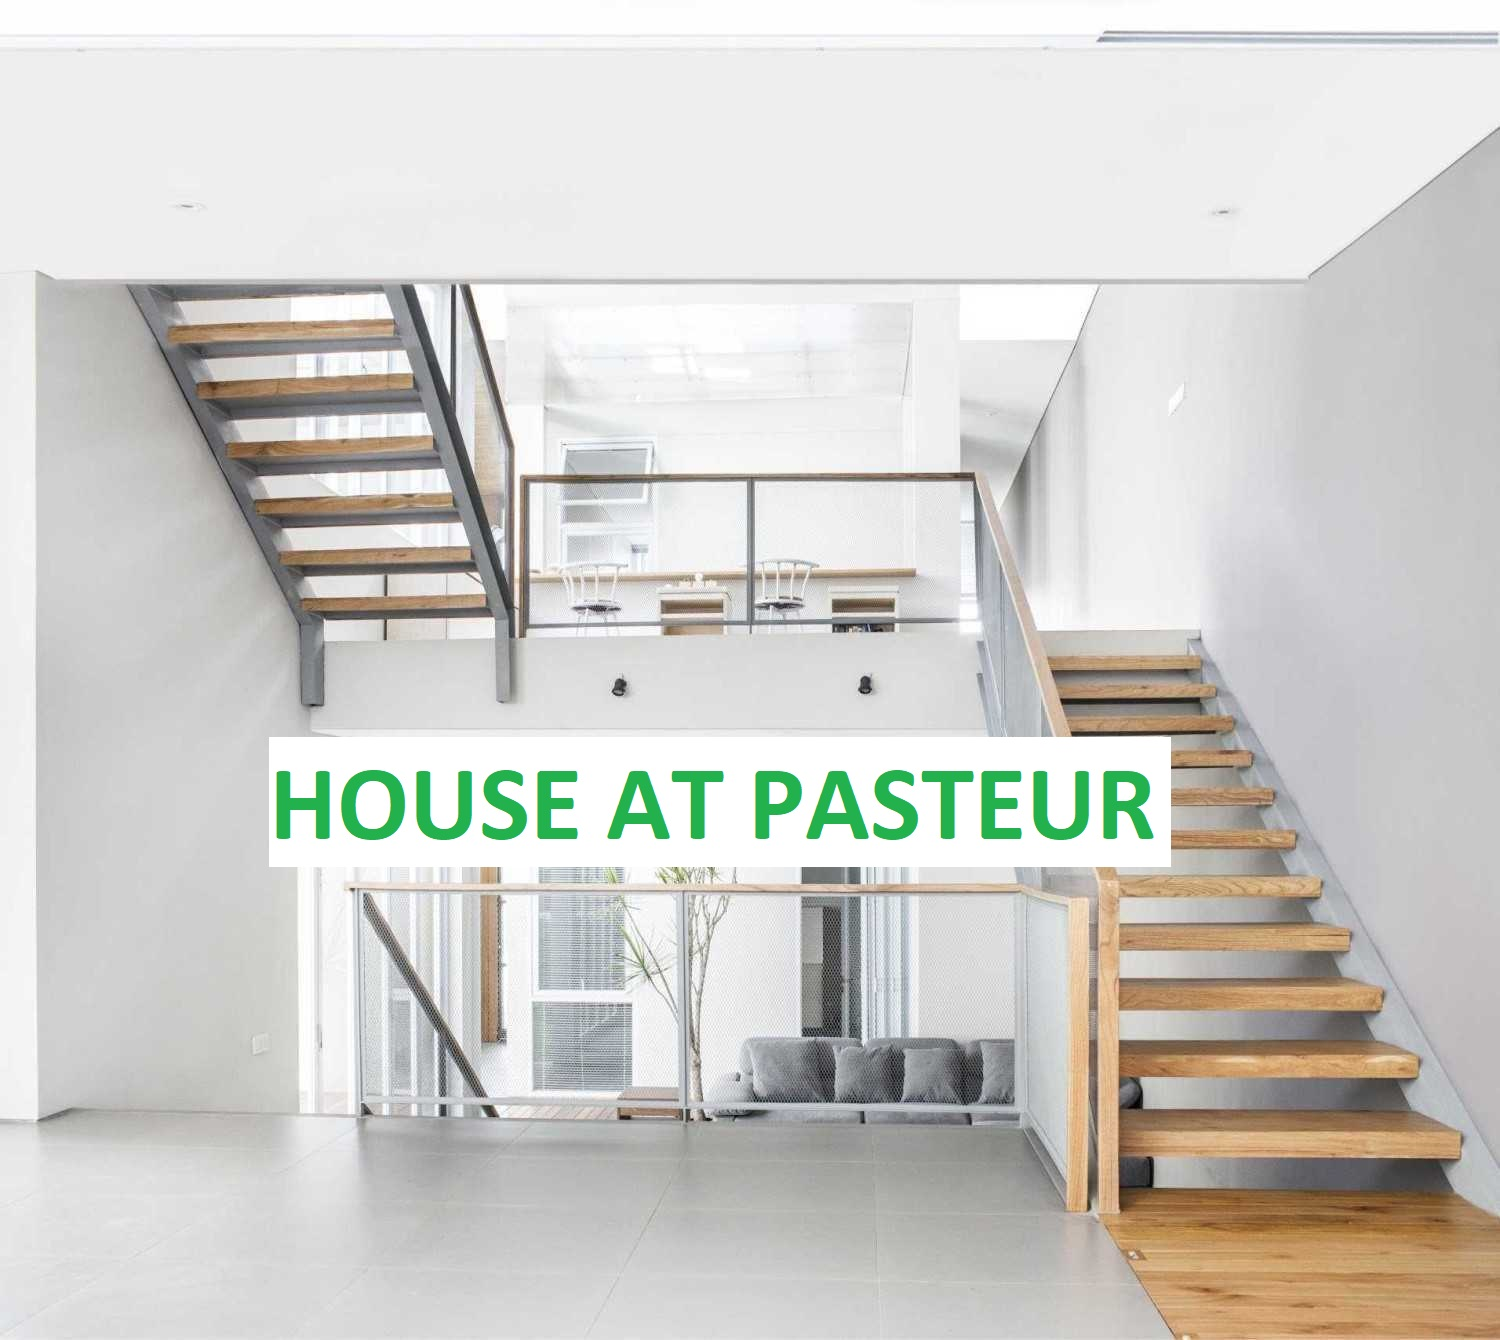 House At Pasteur